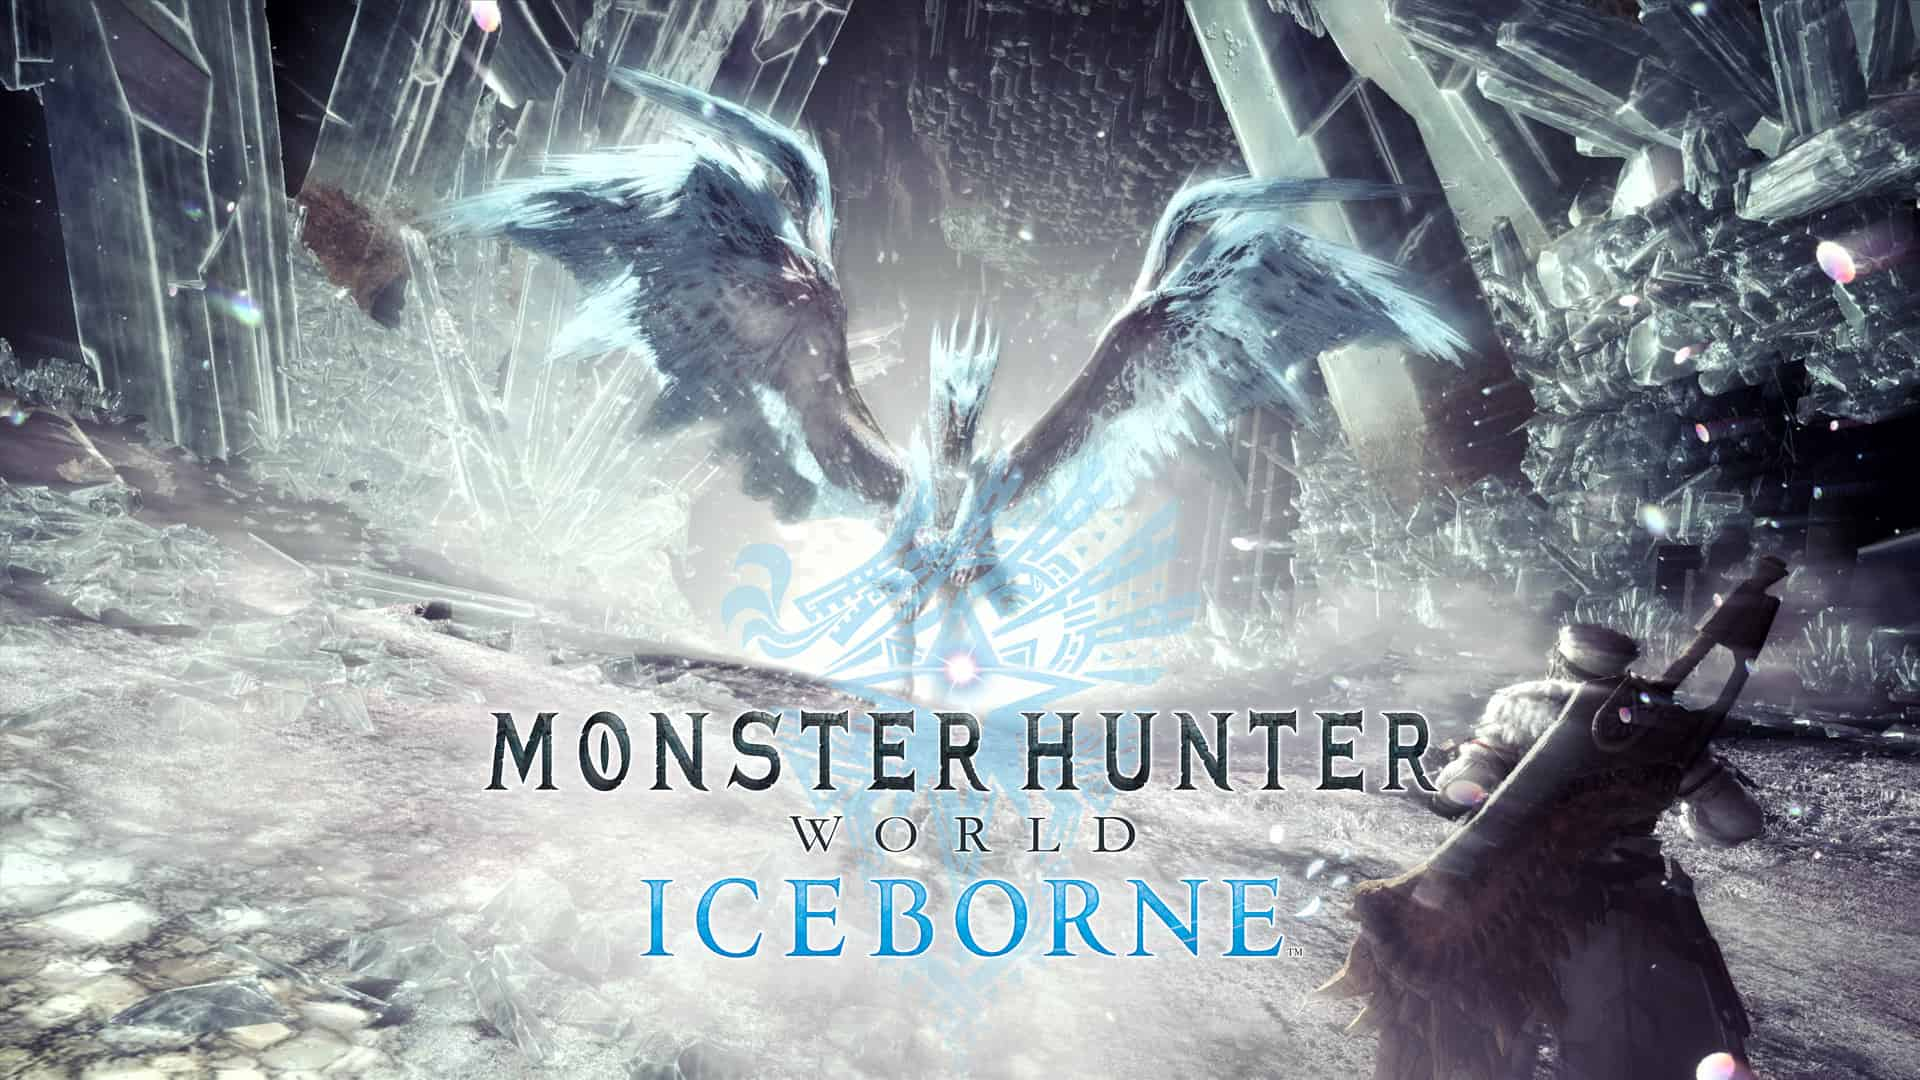 Step Into The Frozen Lands Of Monster Hunter World: Iceborne In The PlayStation 4 Beta